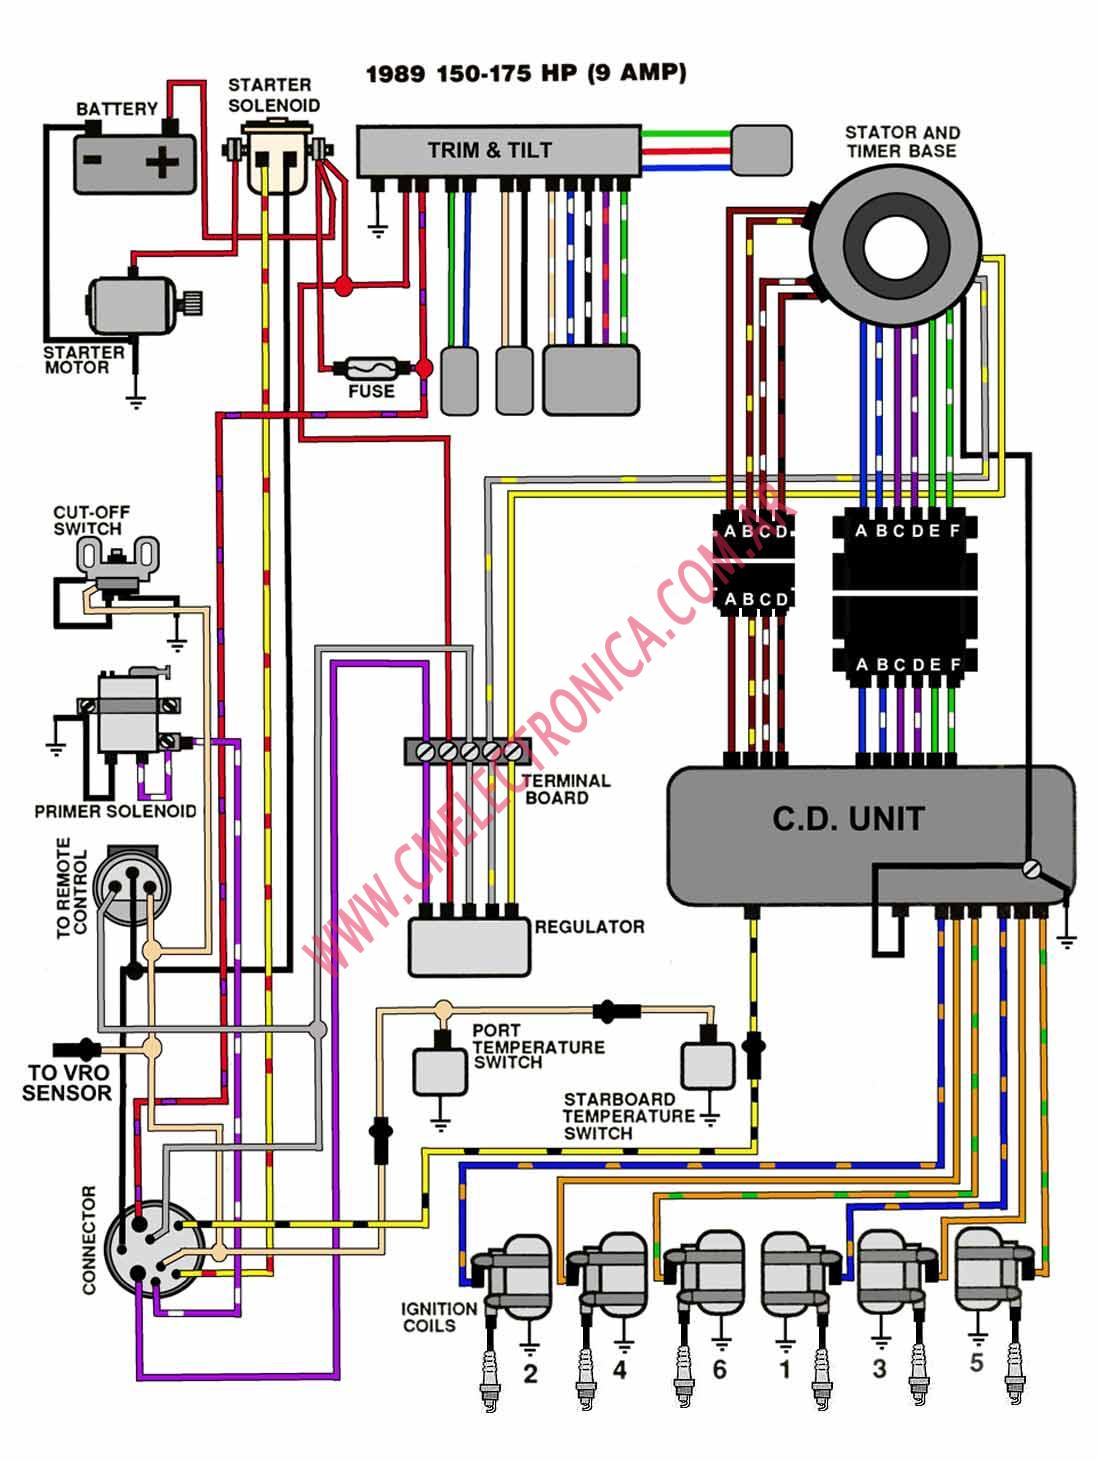 Mariner Outboard Motor Wiring Diagram 70 Horsepower 51 Mercury Internal Harness Evinrude Johnson 1989 89 150 175 9 A 125 Hp On Download Wirning 85